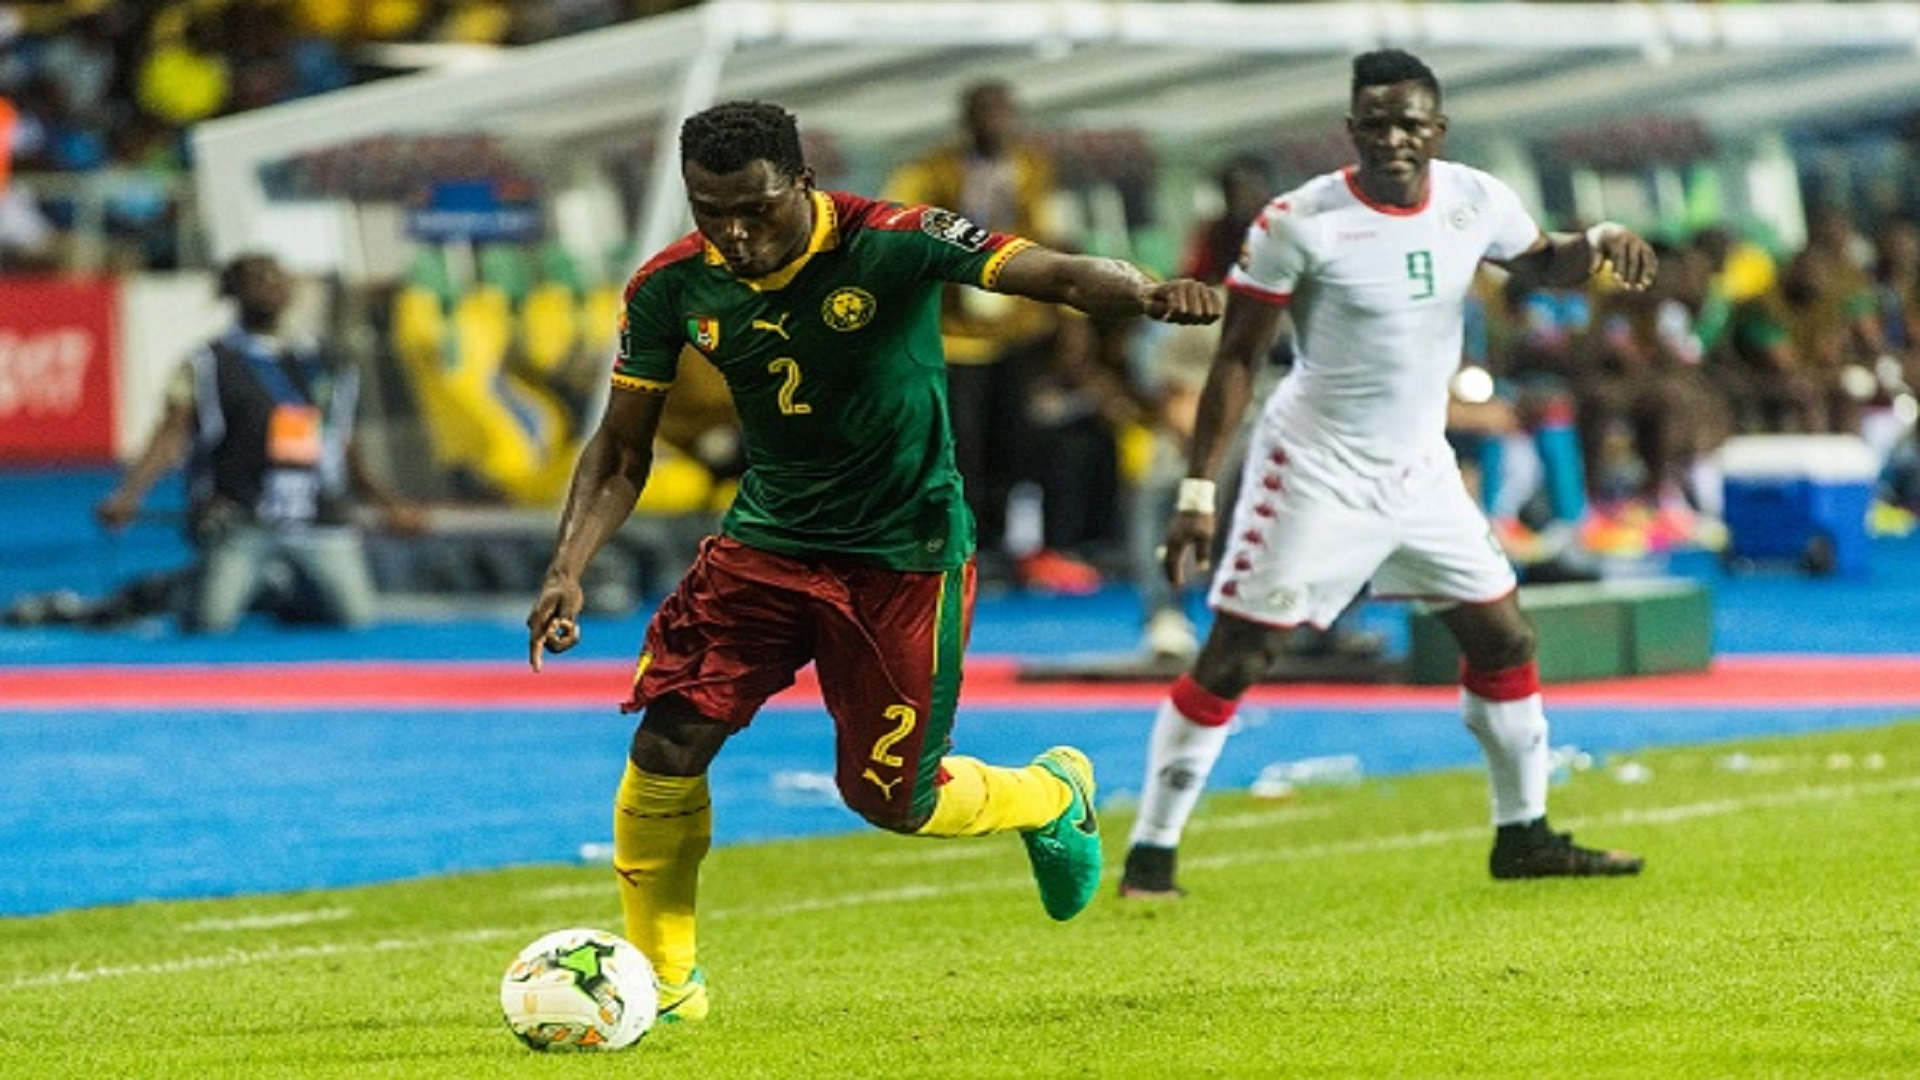 Confederations Cup 2017, dove vedere Camerun-Cile in Tv e in streaming